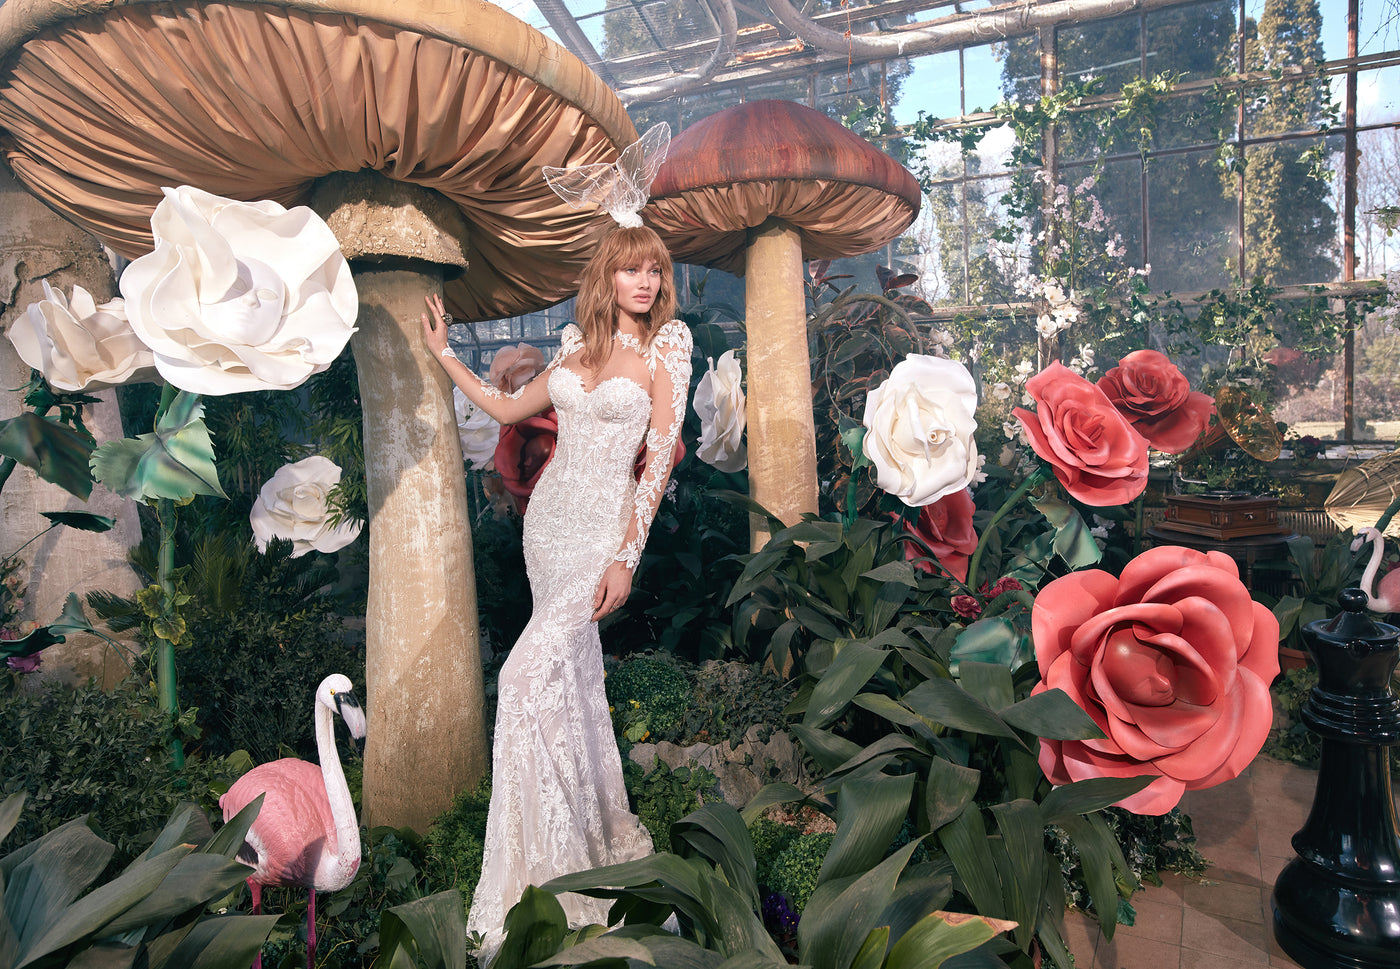 TOP TRENDS FROM GALIA LAHAV NEW YORK BRIDAL MARKET COLLECTION